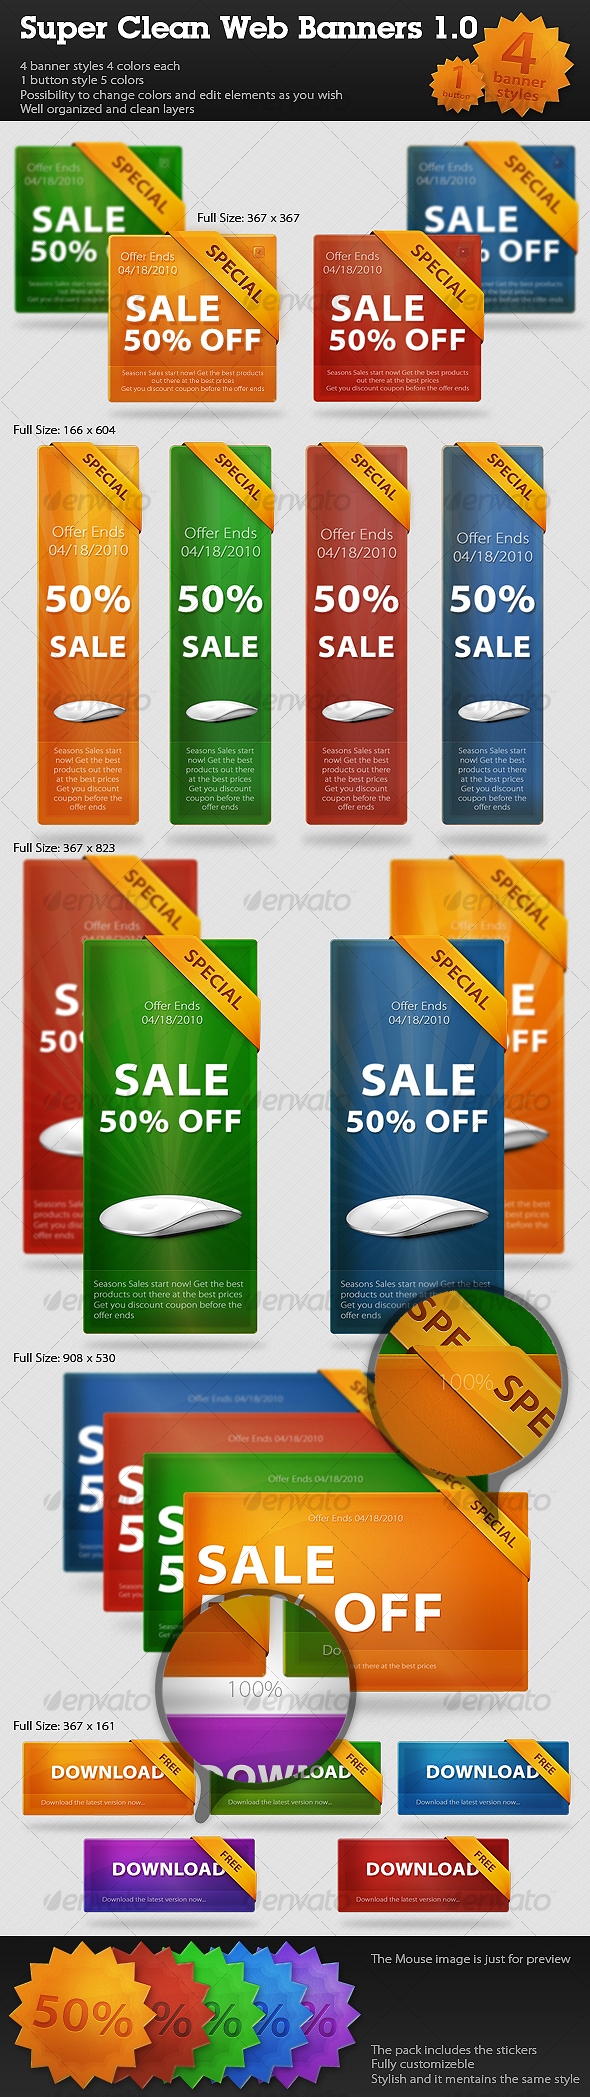 GraphicRiver Super Clean Web Banners Web Boxes 1.0 89903